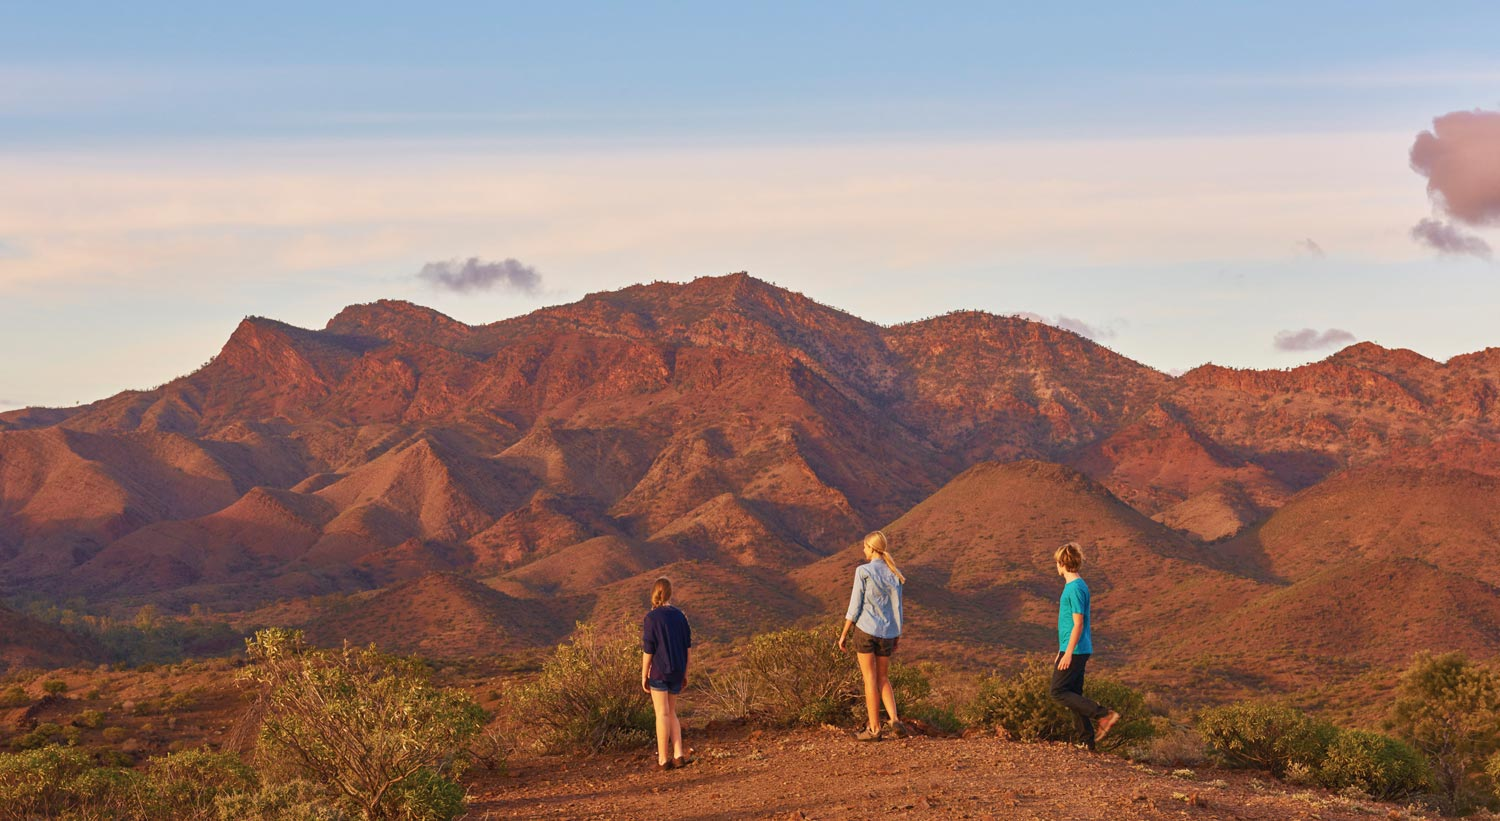 Exploring the Flinders Ranges with family